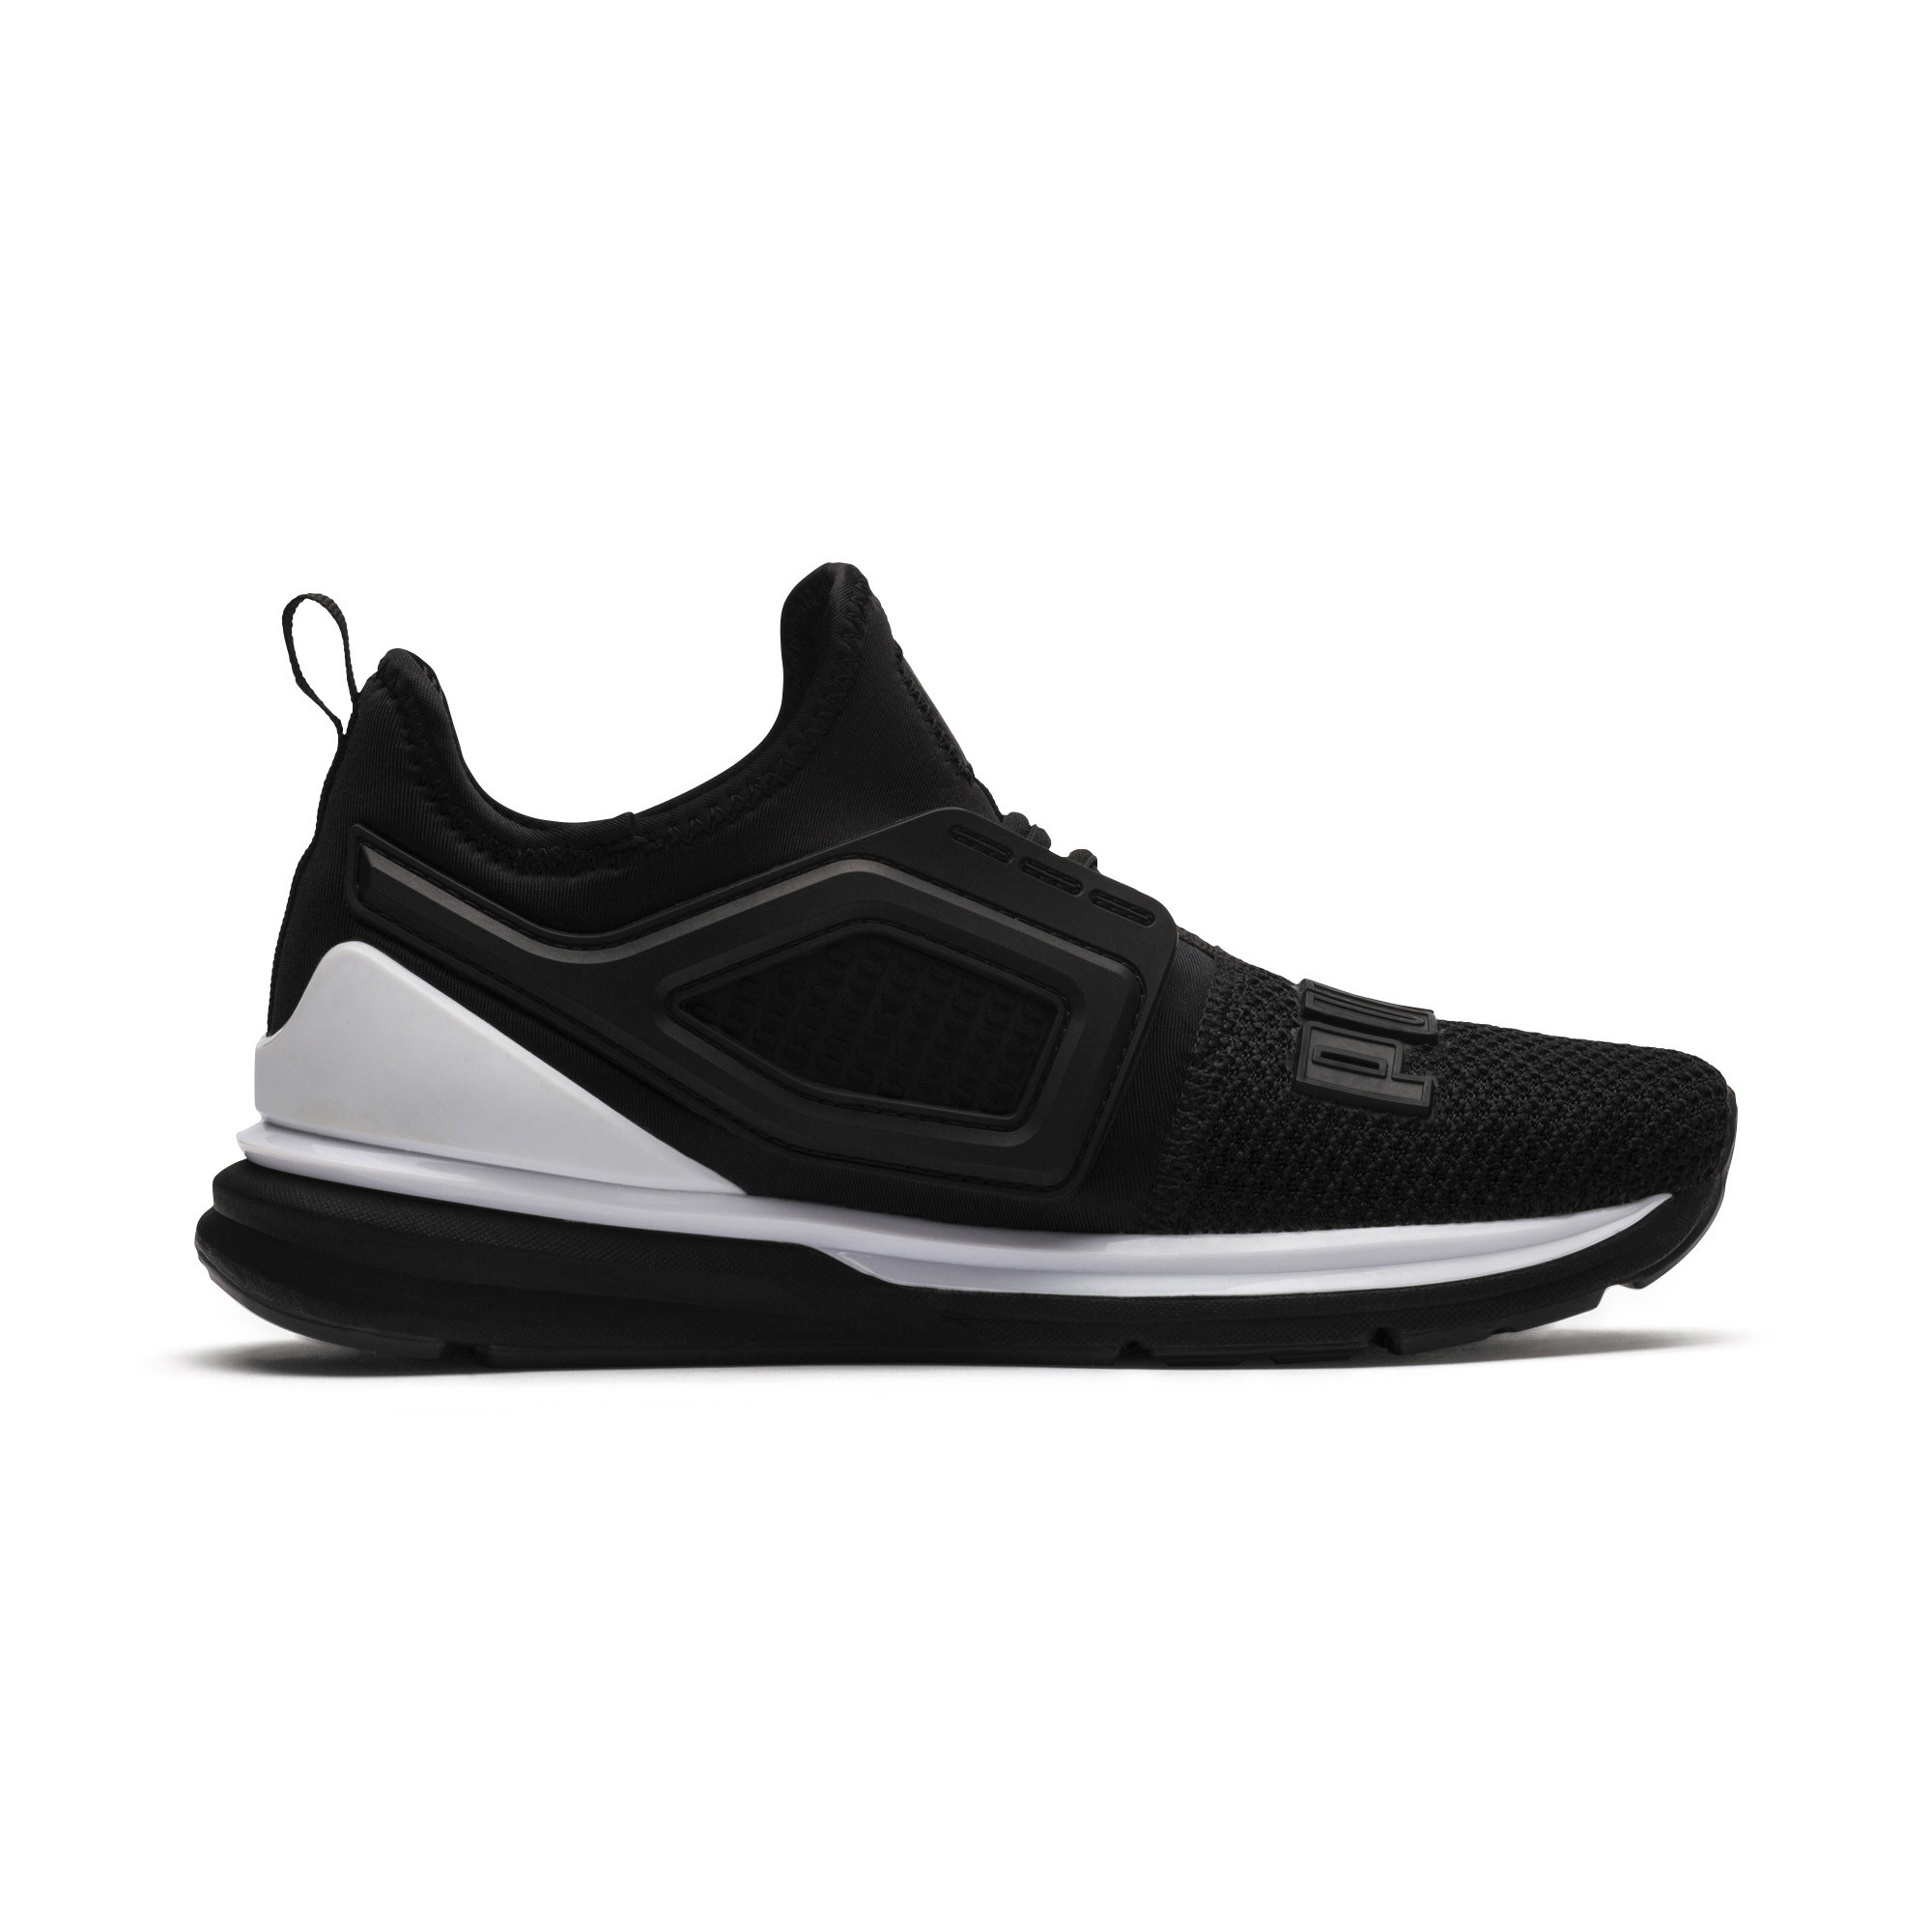 638b4ee2 Details about PUMA IGNITE Limitless 2 Women's Running Shoes Women Shoe  Running